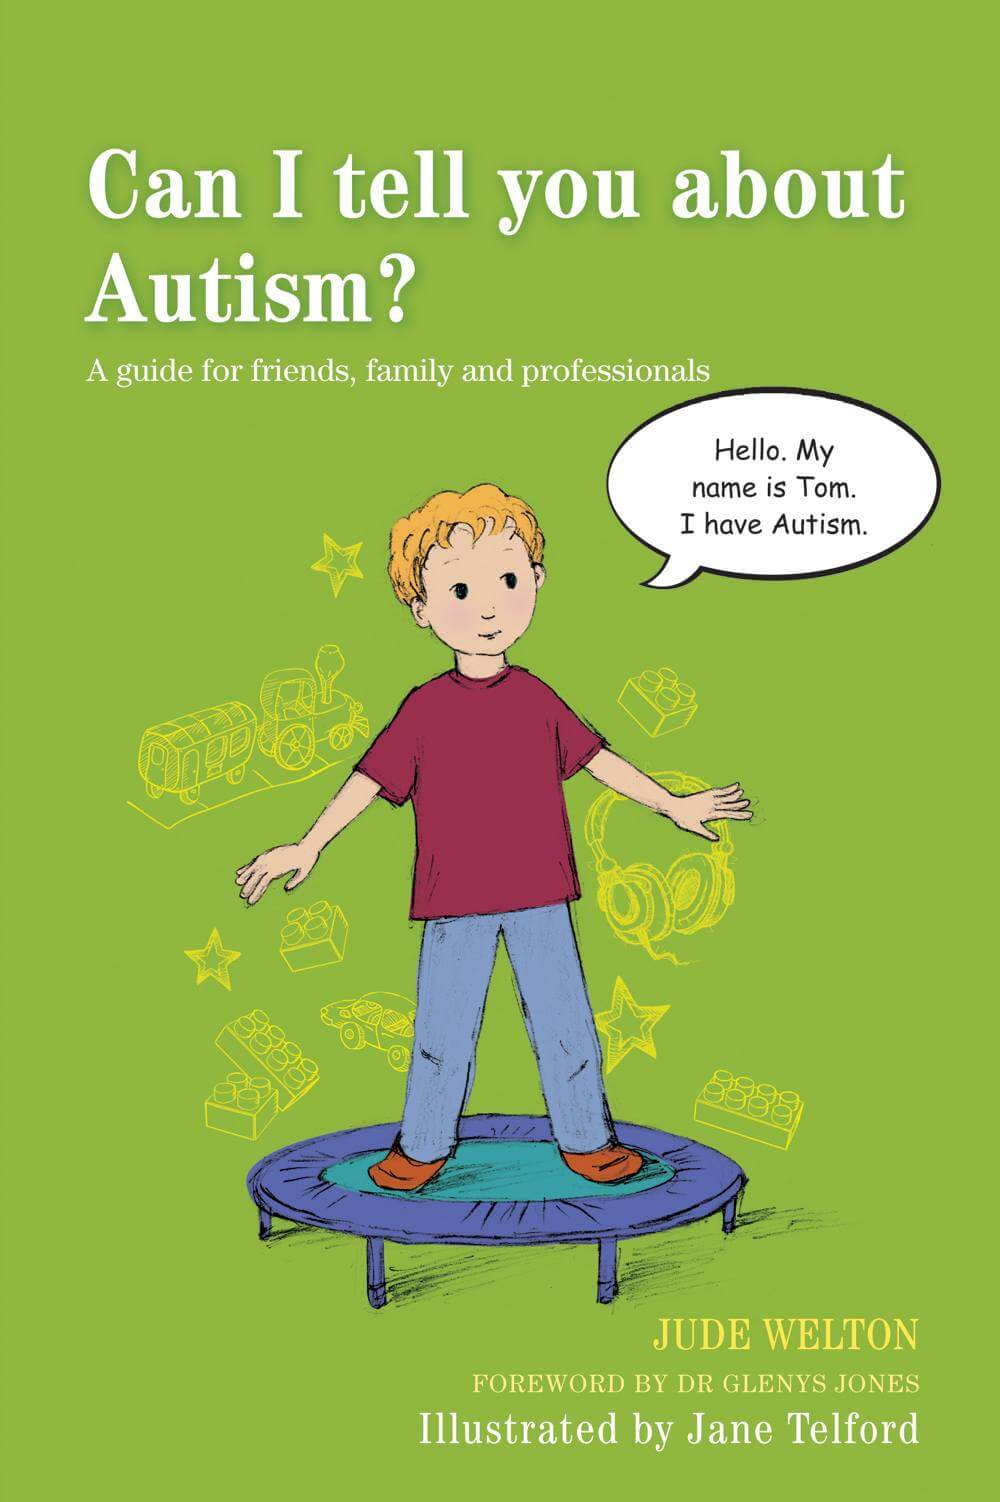 Can I tell you about Autism? A guide for friends, family and professionals